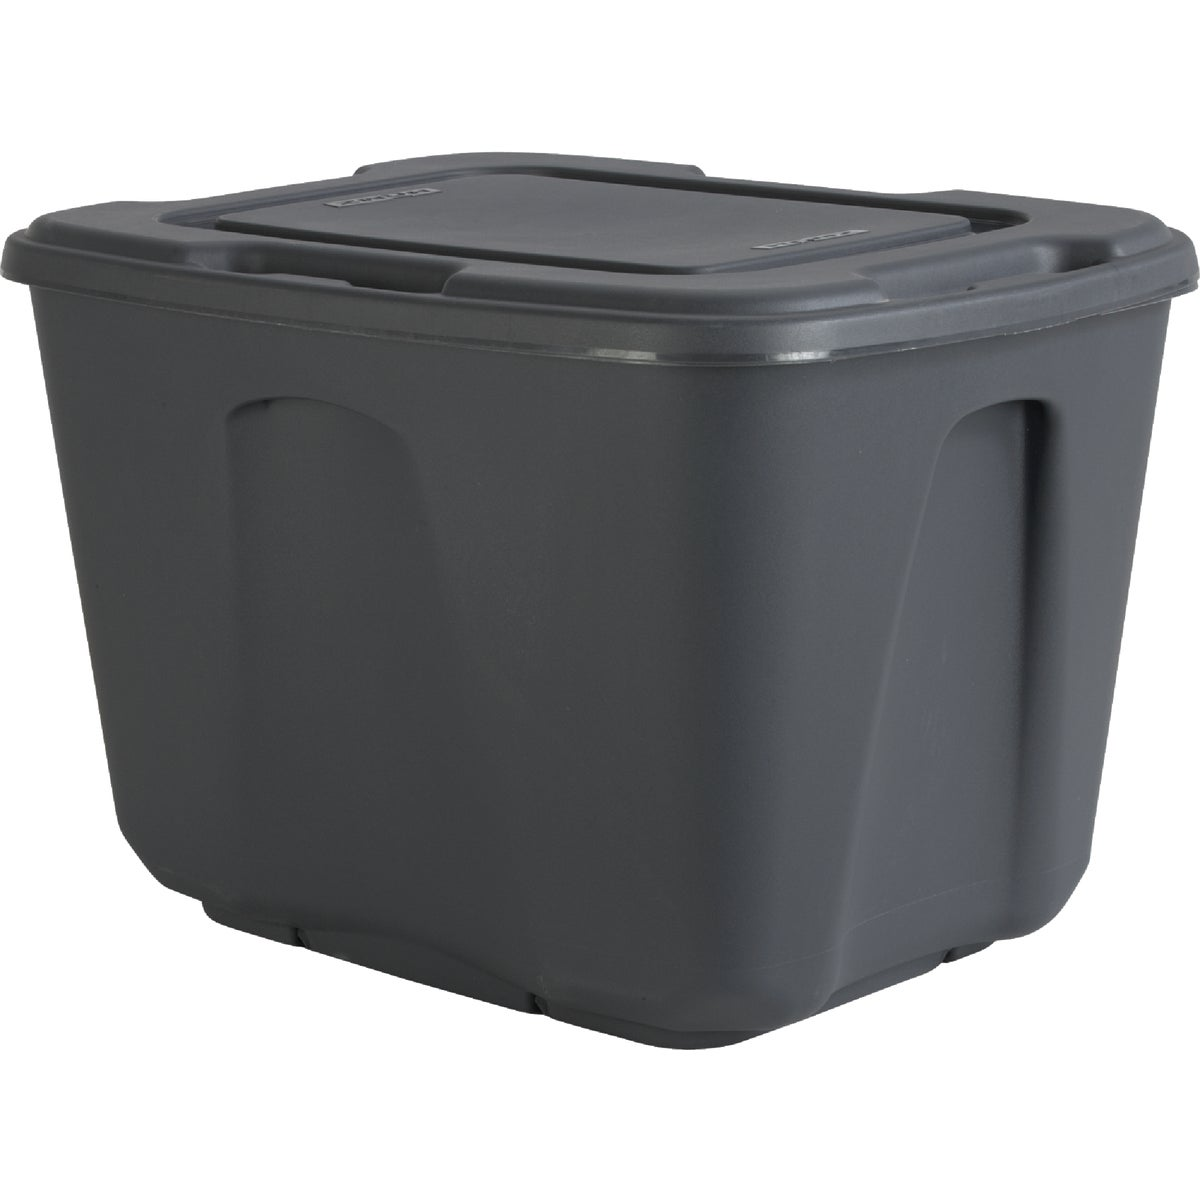 18 GALLON TOTE BOX - 6518.RMC.08 by Homz/ Tamor